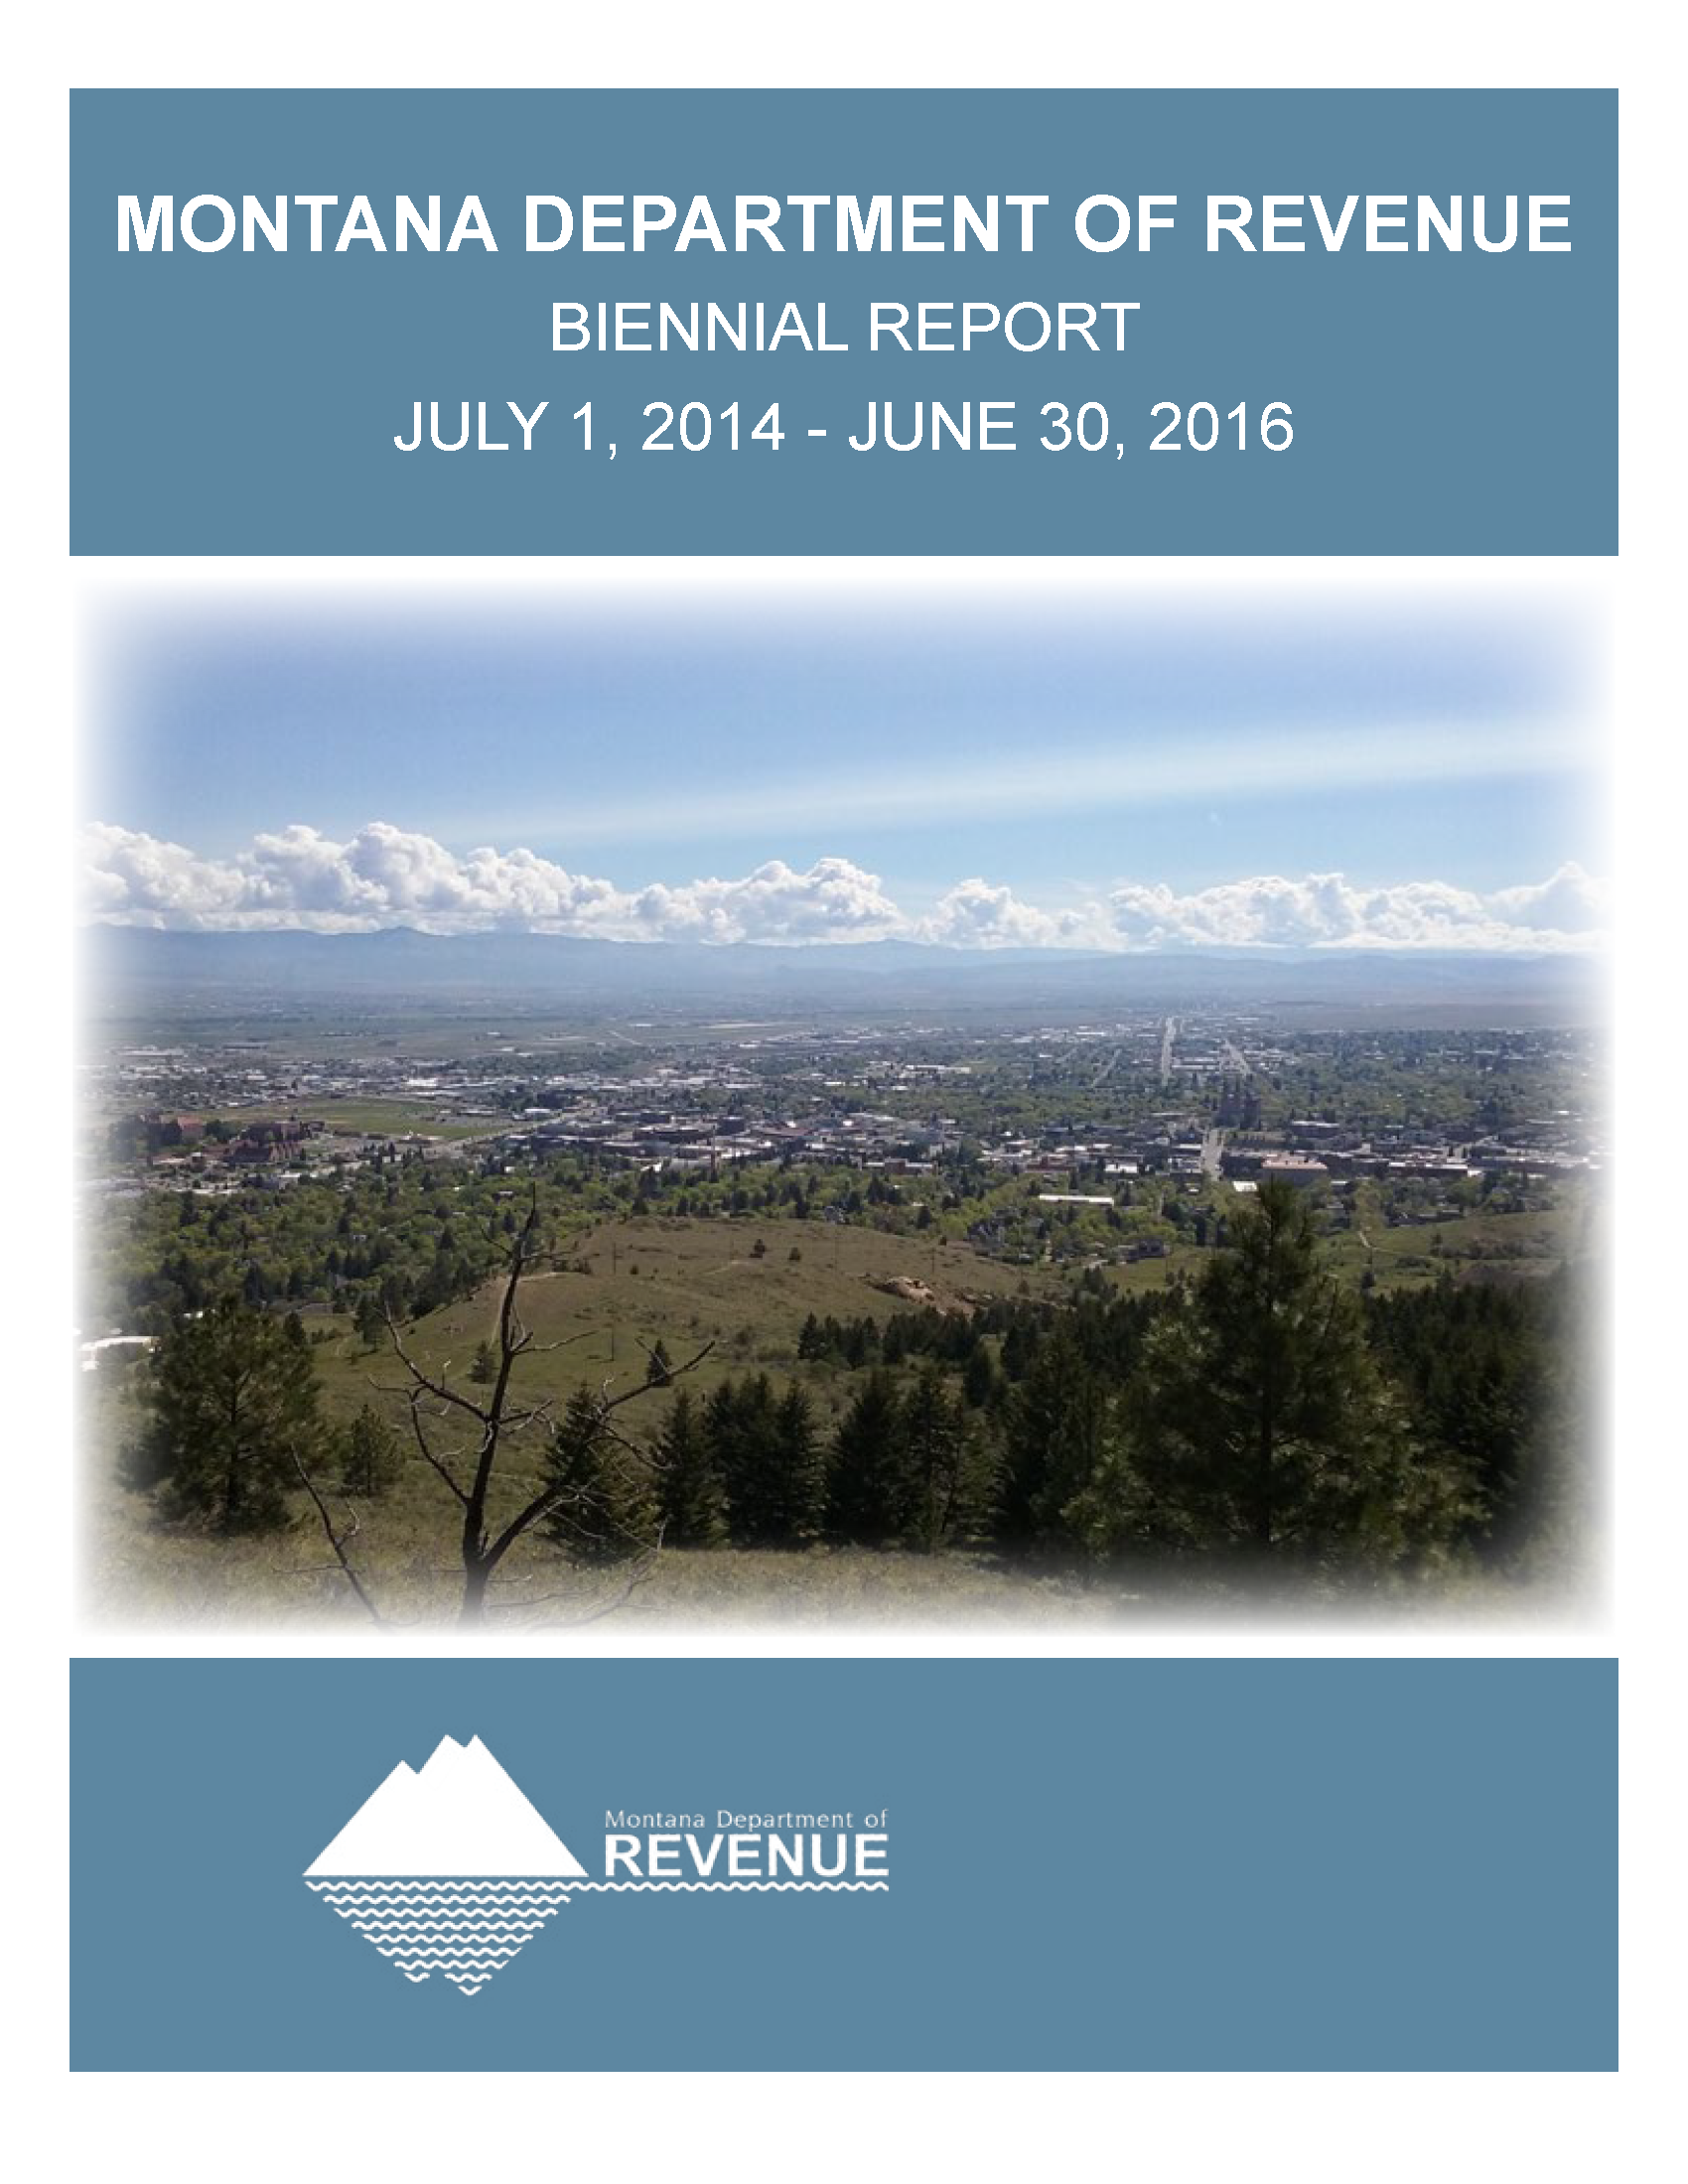 2014-2016 Biennial Report Cover Image